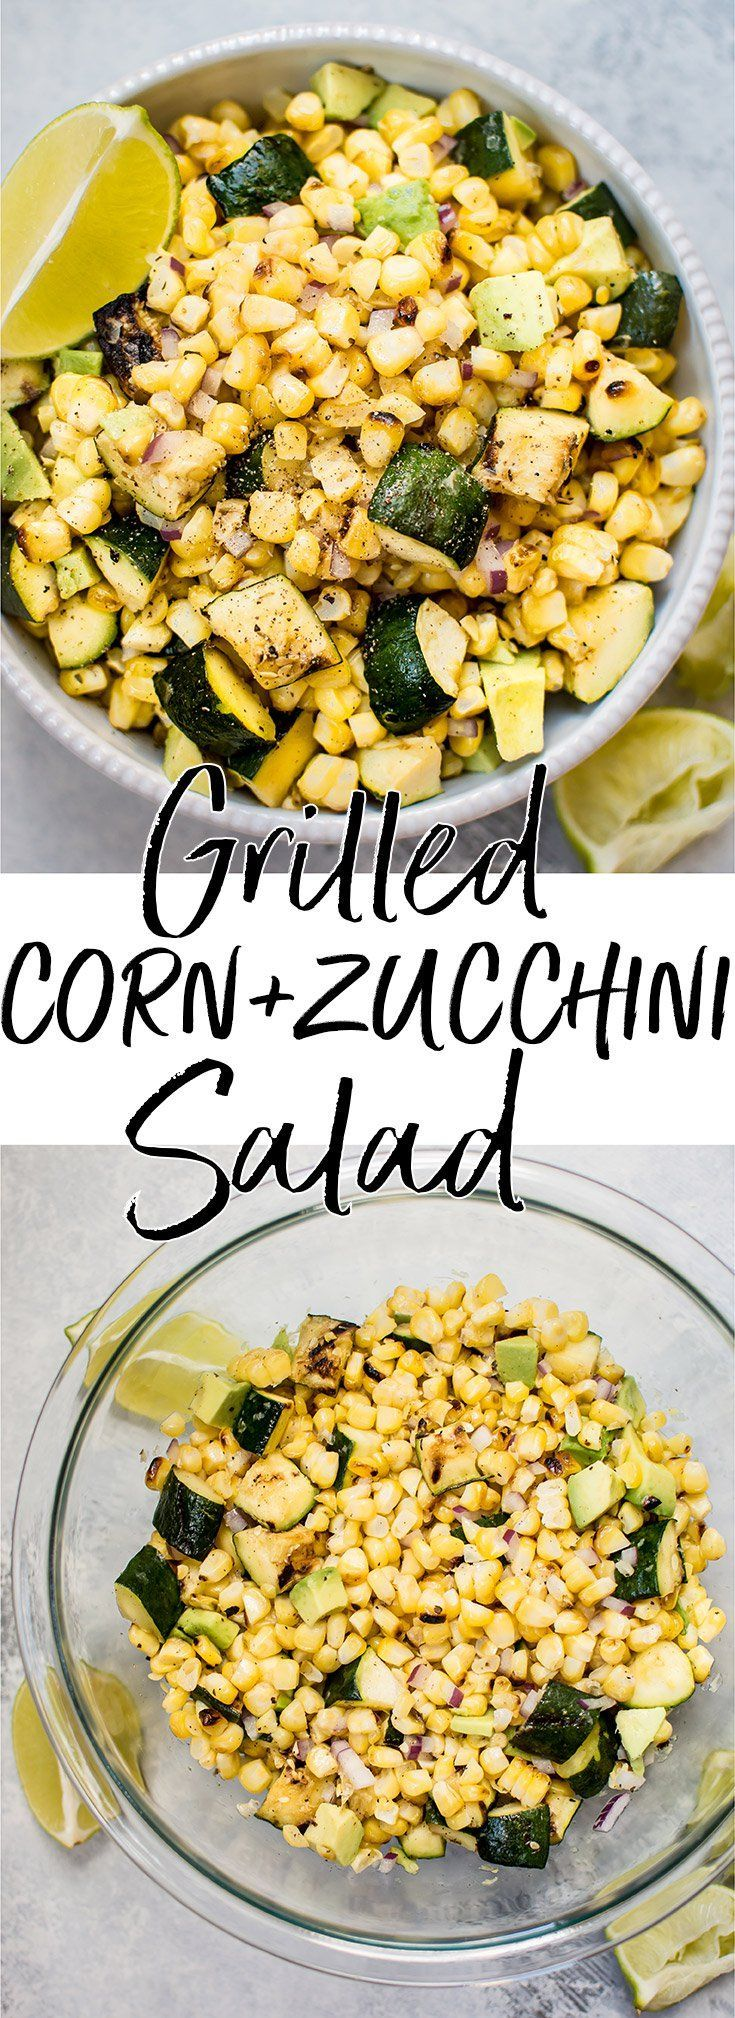 This grilled corn and zucchini salad is fresh, fast, and bursting with flavor! Only a few simple ingredients are needed to make this delicious summer salad. #grilledcorn #grilledzucchini #grilledsalad #summersalad #cornzucchinisalad #veganrecipe